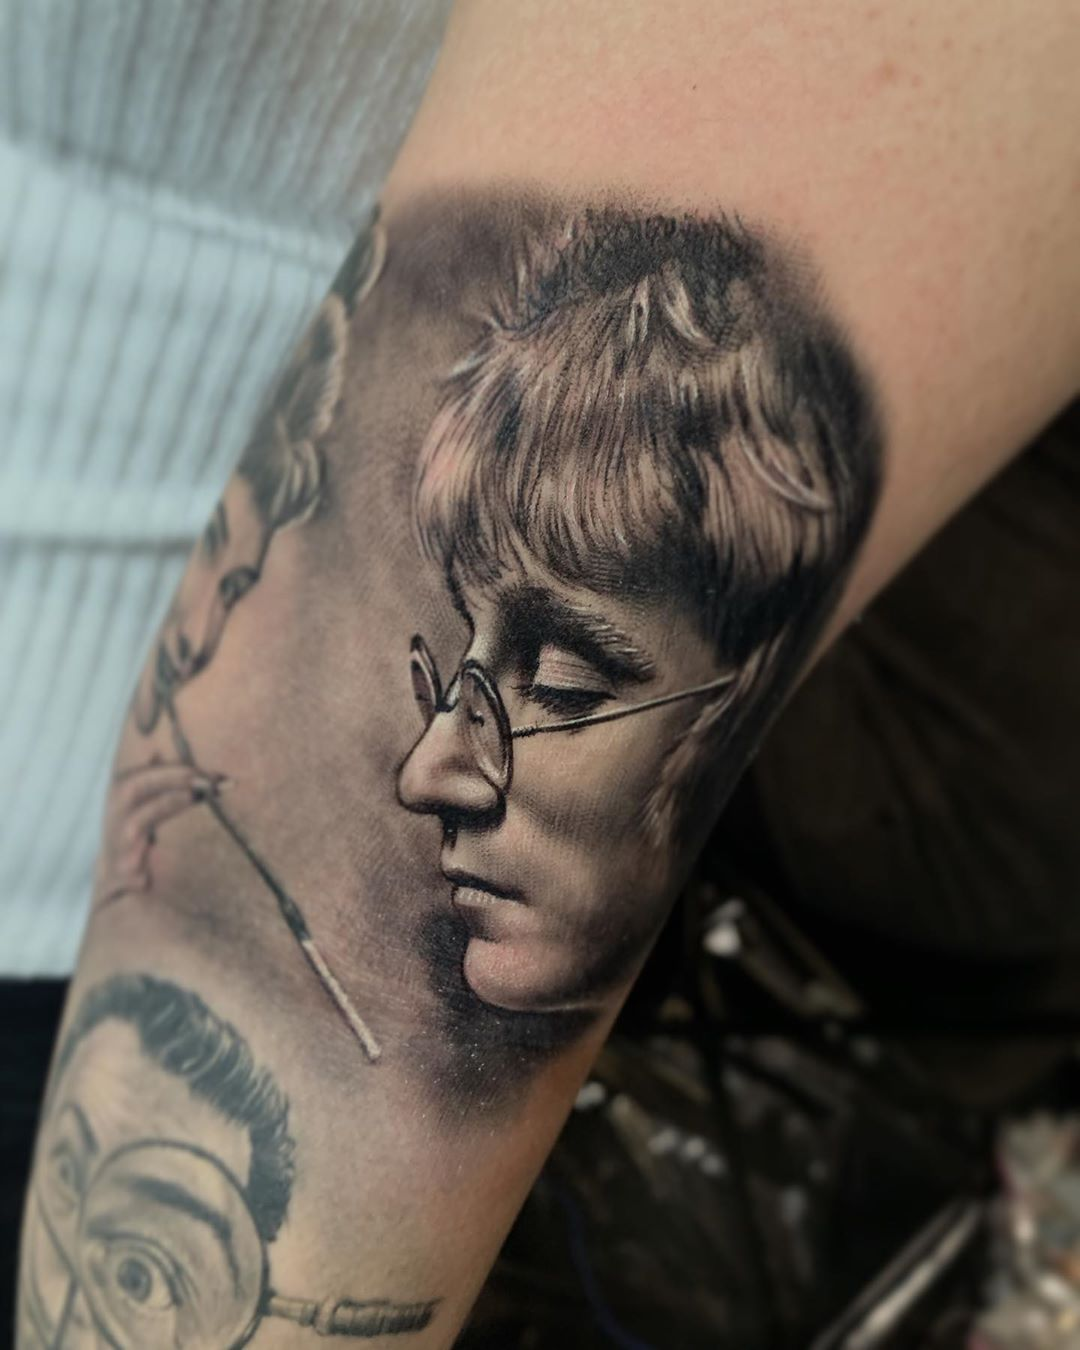 https://artdrivertattoomachines.com/wp-content/uploads/2019/10/andresjaramillotattoo_66618609_130862731482576_2901752721204023555_n.jpg